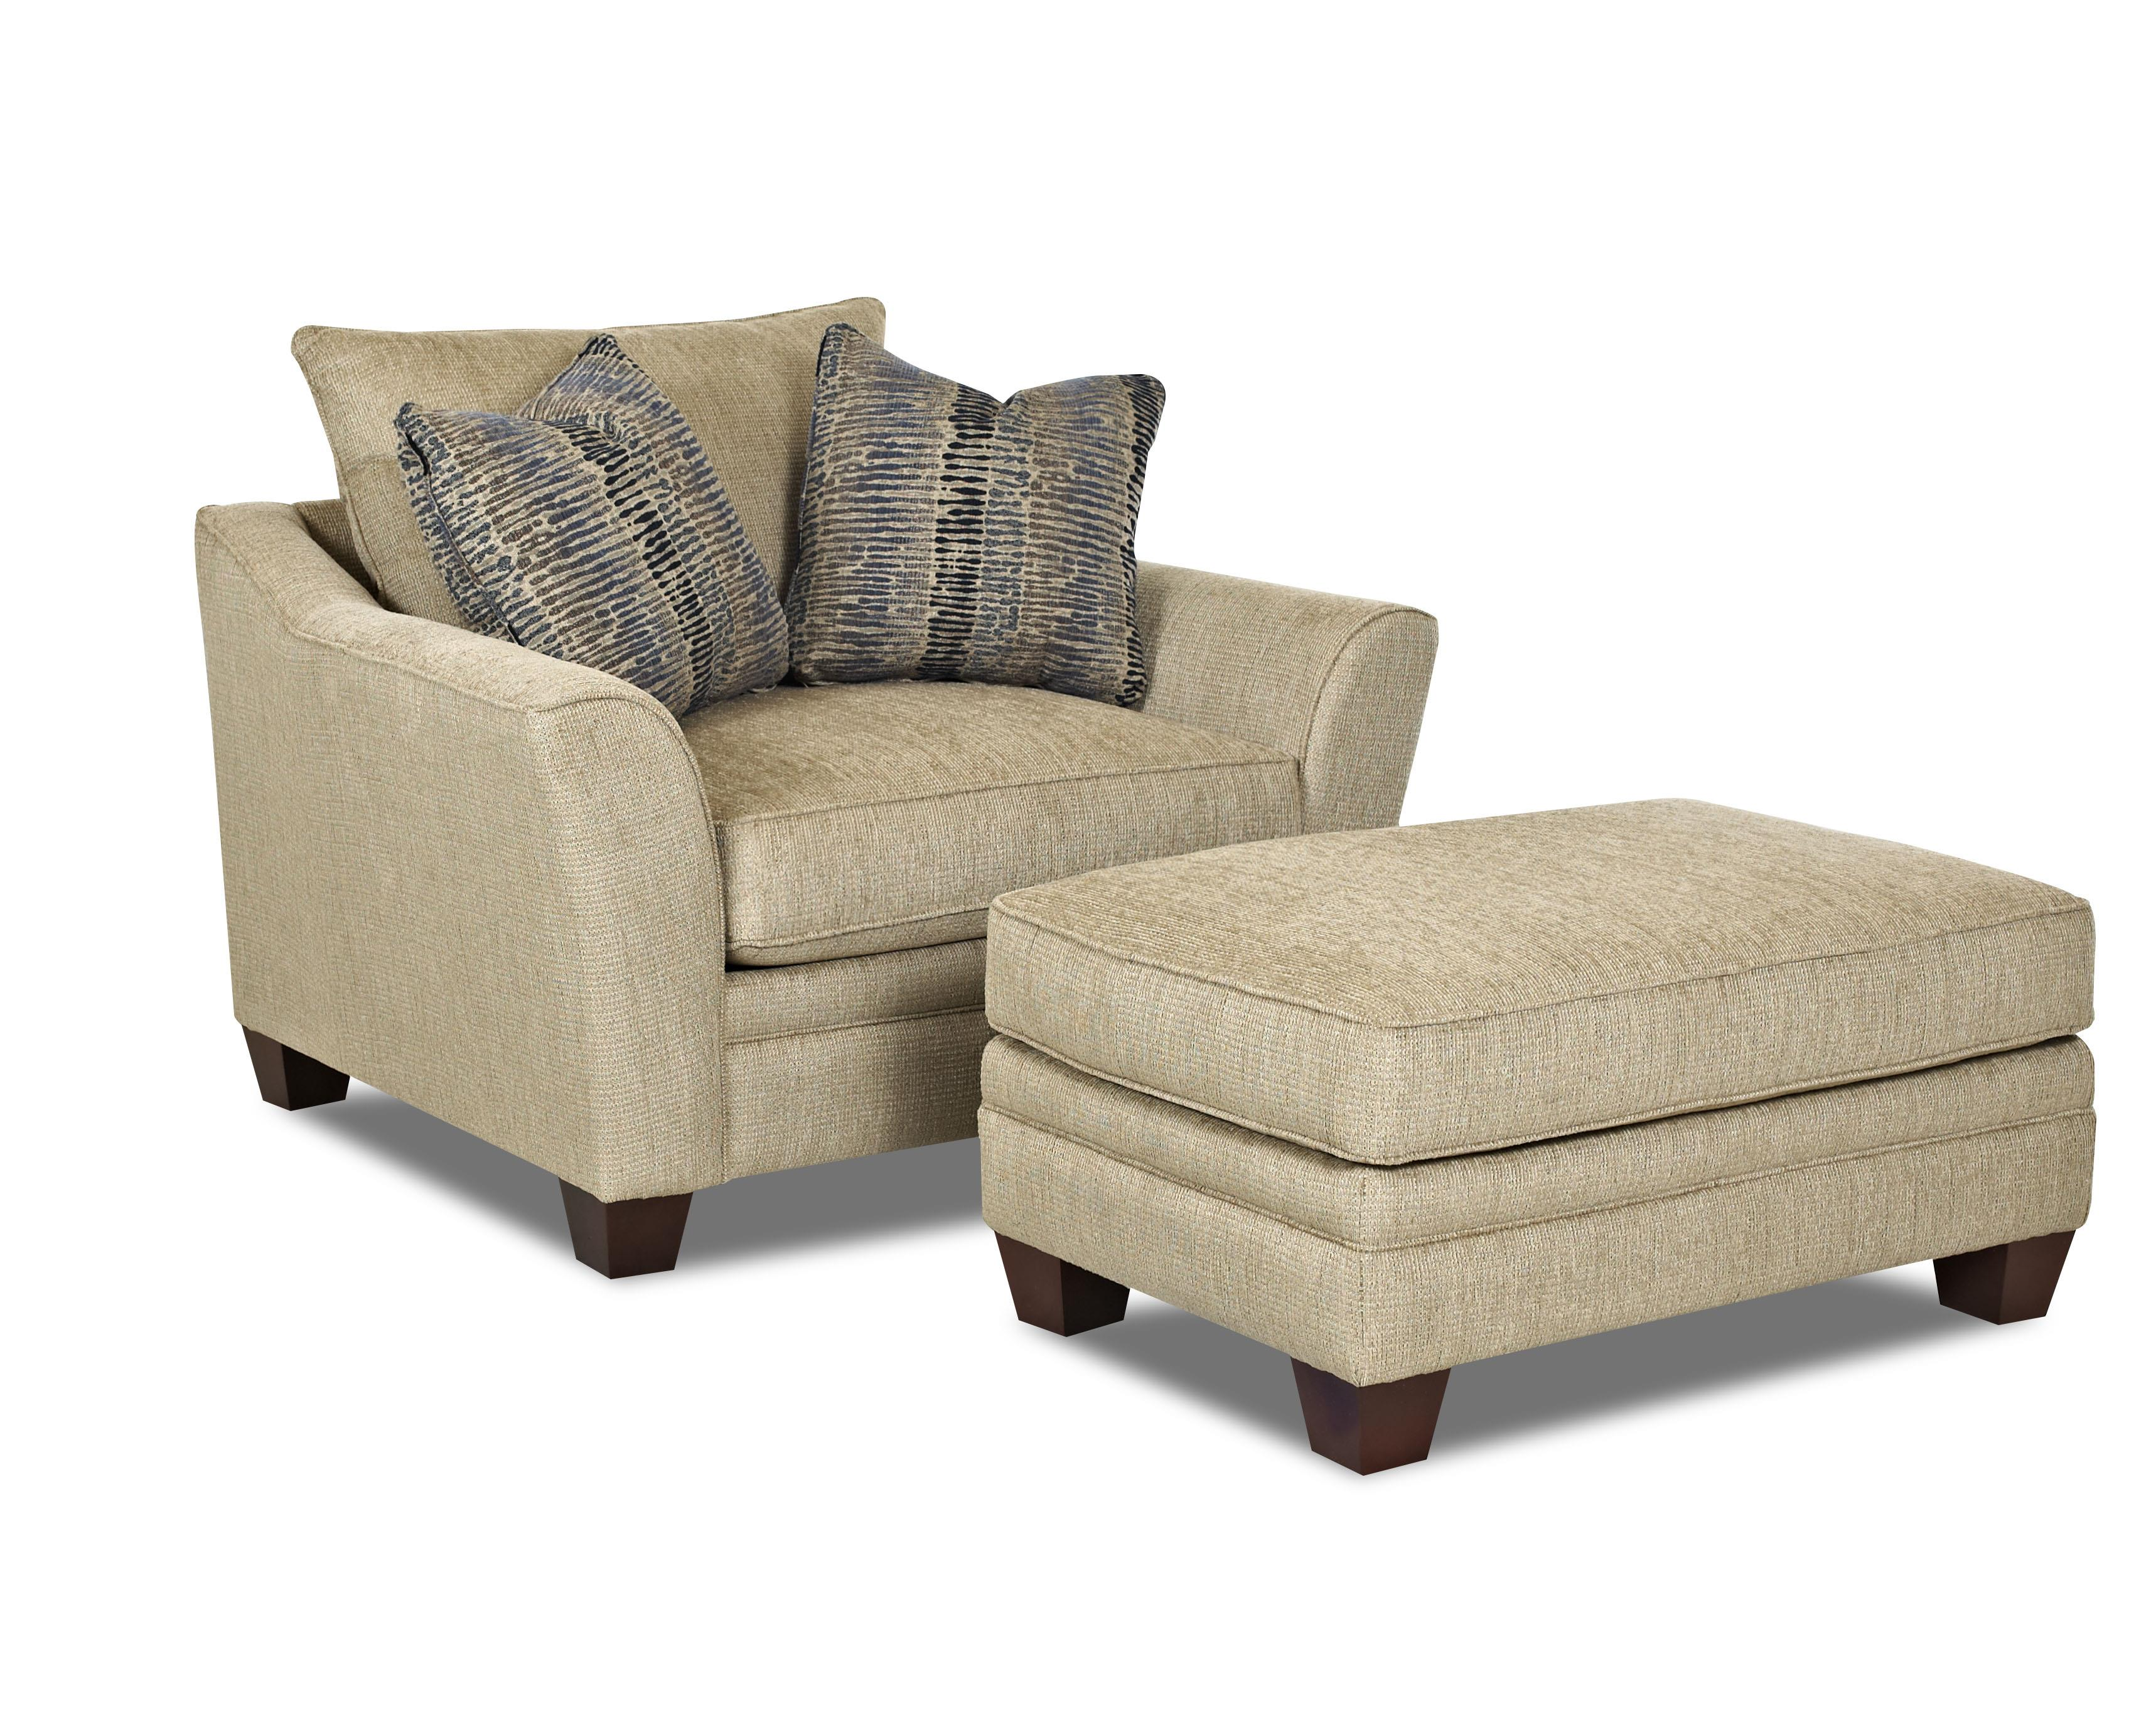 Klaussner Posen Chair and Ottoman Set - Item Number: 83844 C+OTTO-WootenSandstone